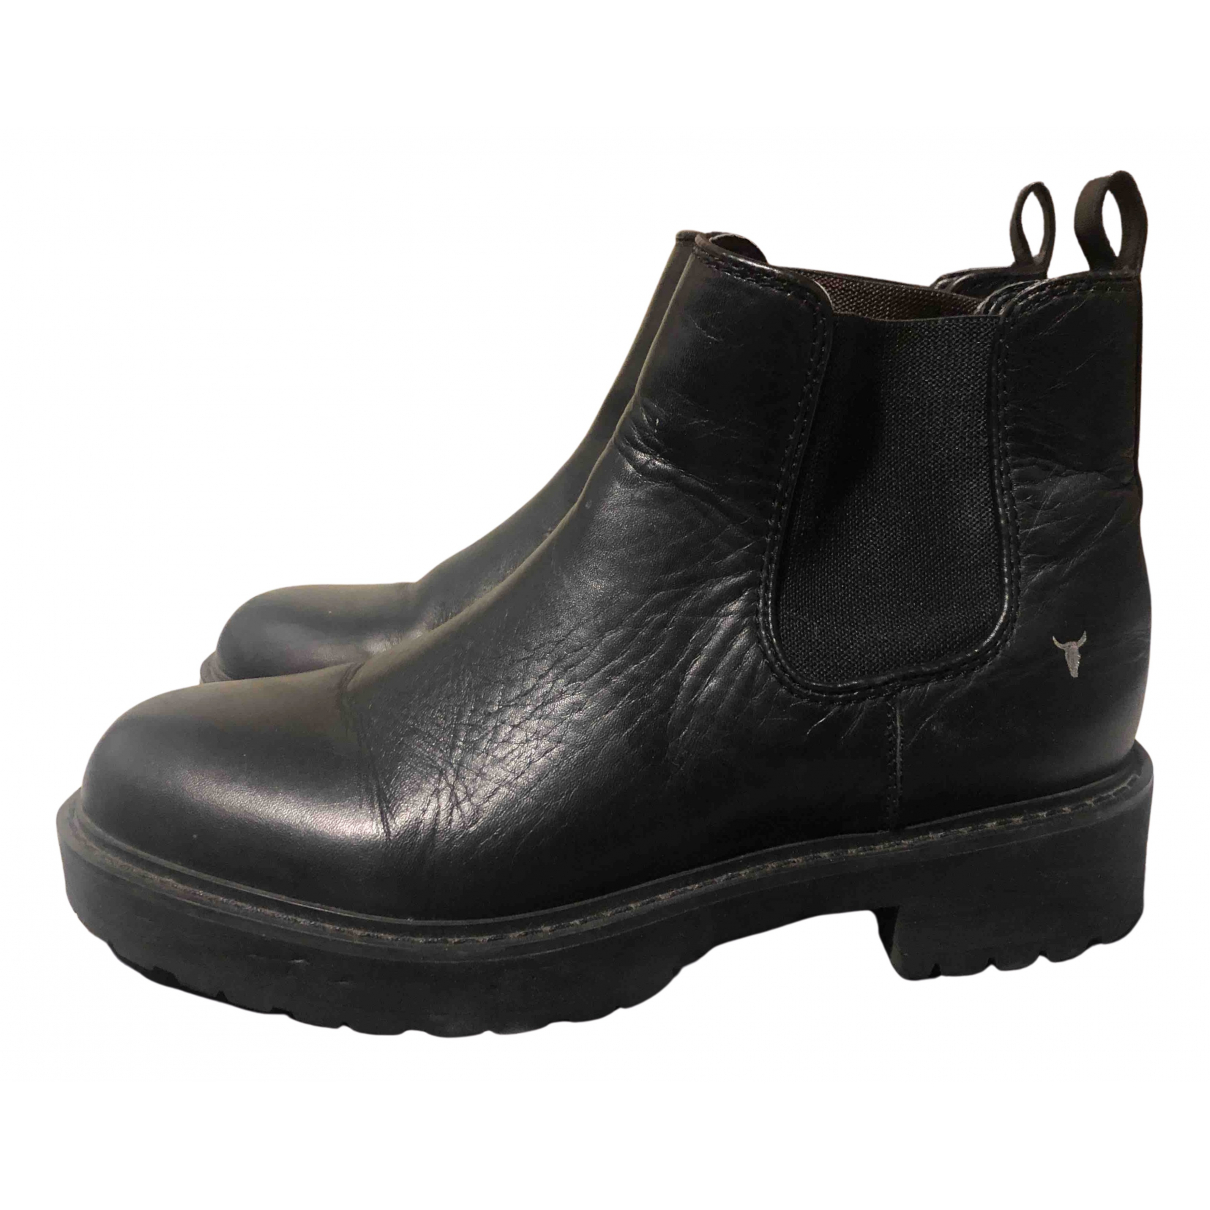 Windsor Smith N Black Leather Ankle boots for Women 39 EU